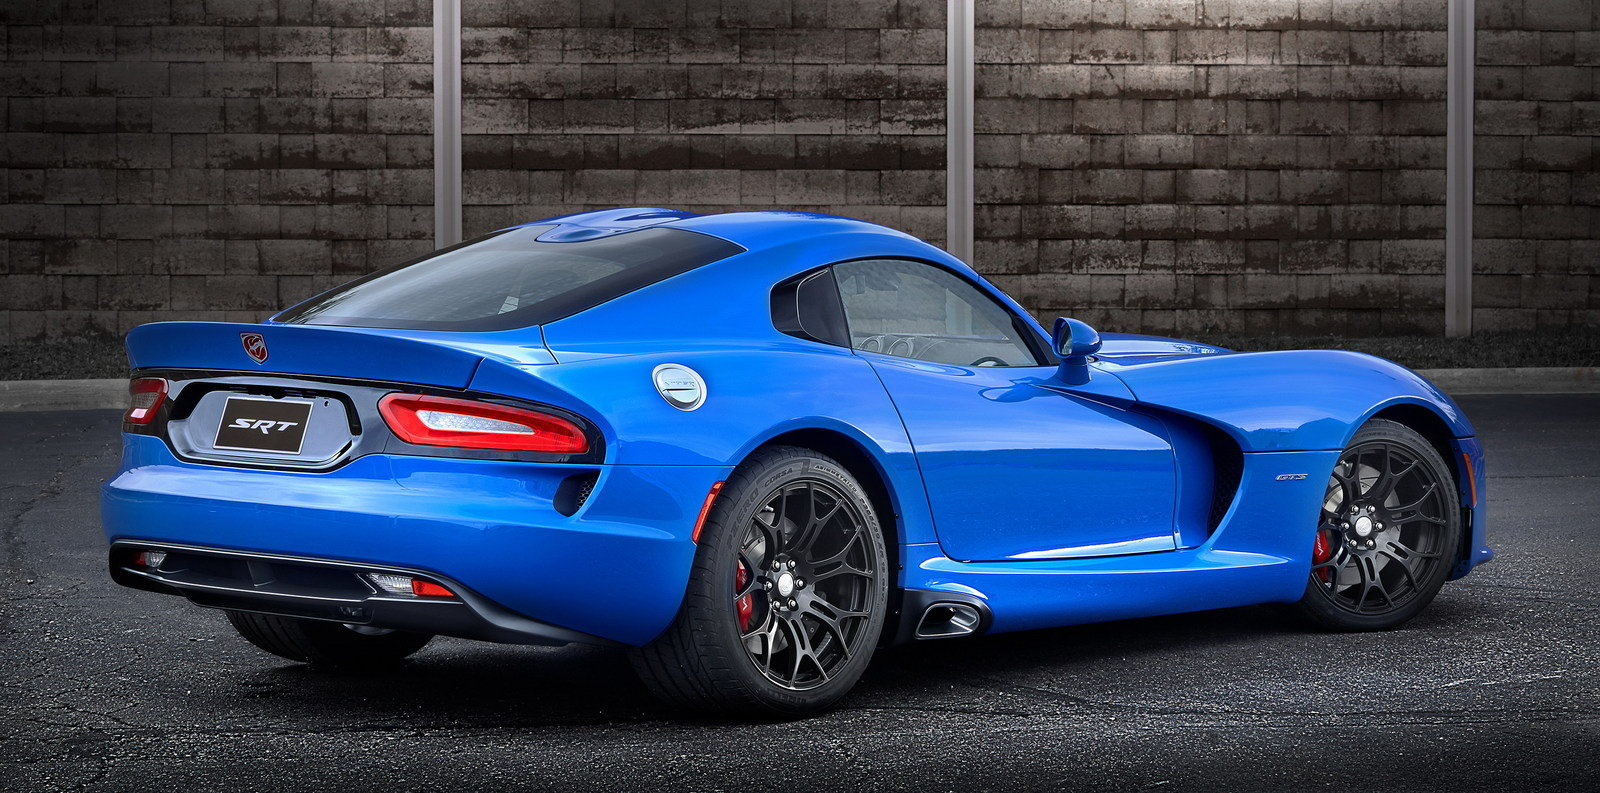 2015 dodge viper gts ceramic blue edition package picture 566726 car review top speed. Black Bedroom Furniture Sets. Home Design Ideas